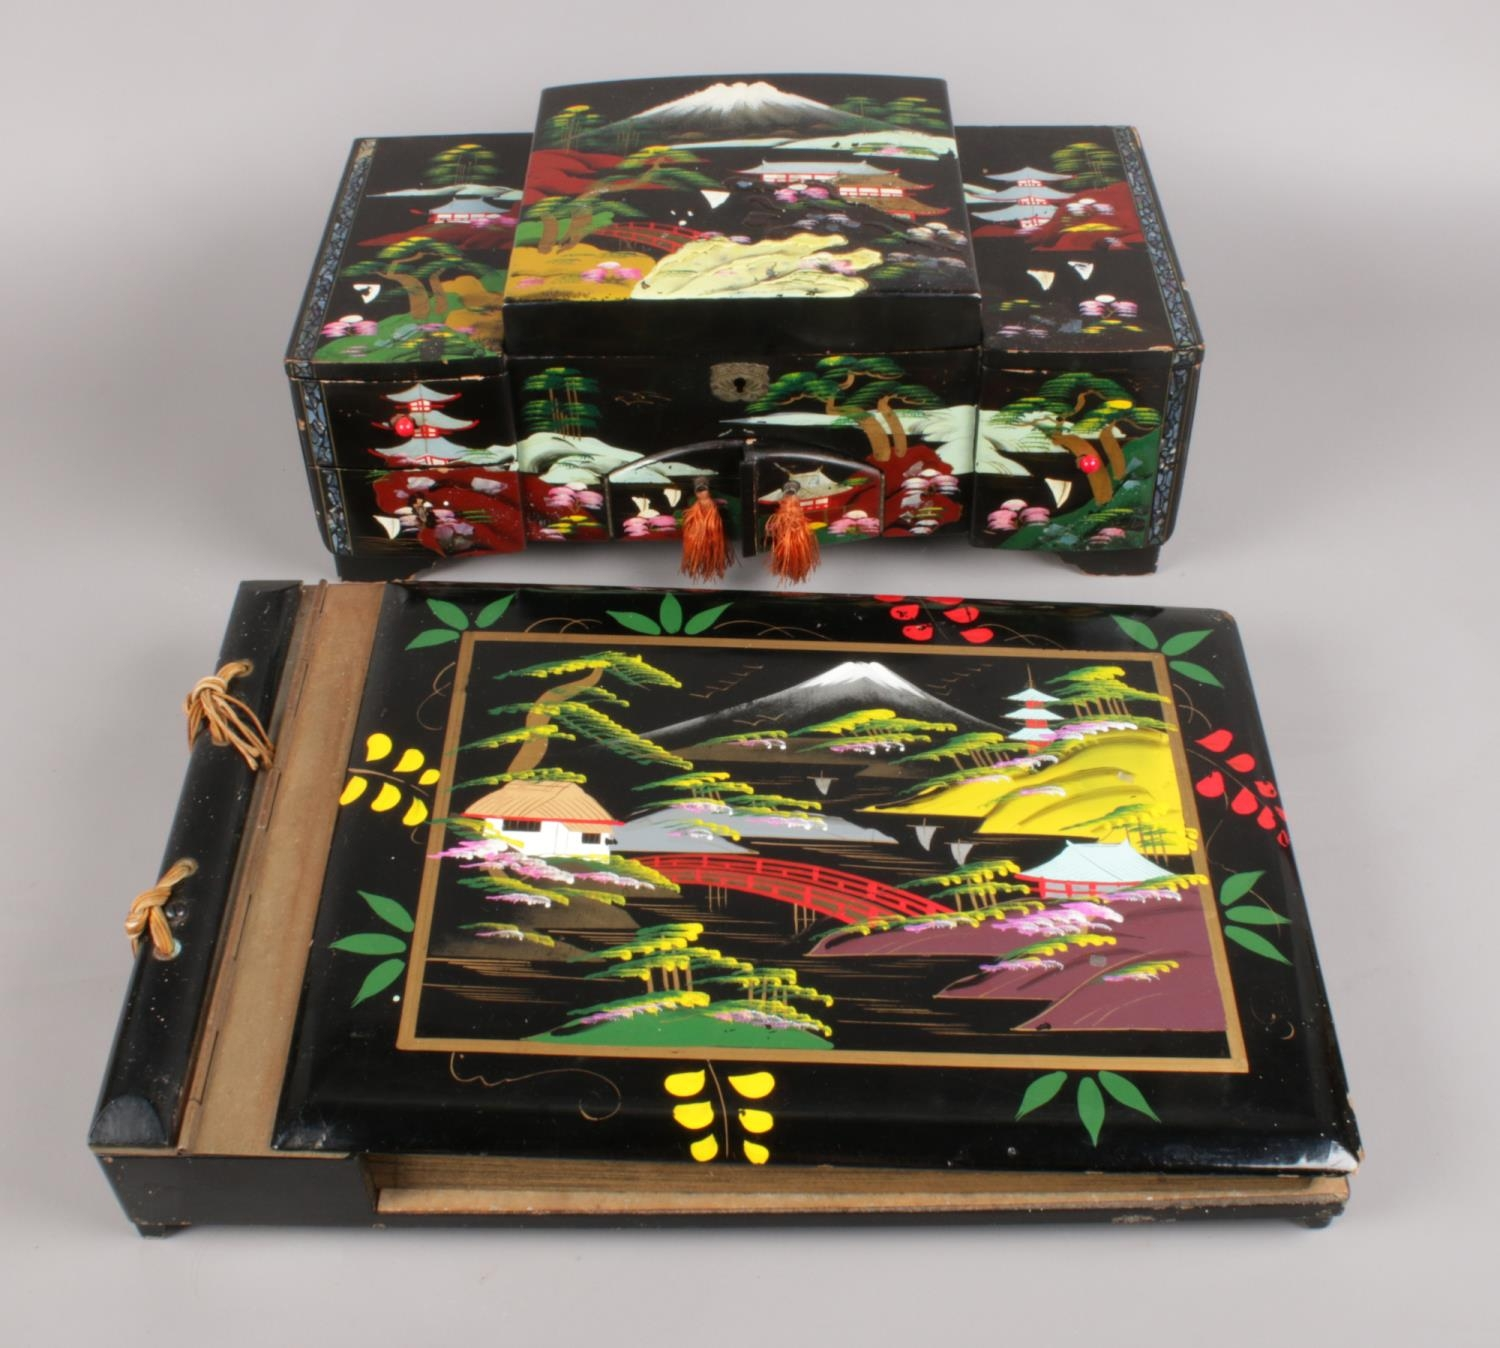 A Japanned musical jewellery box and matching album.